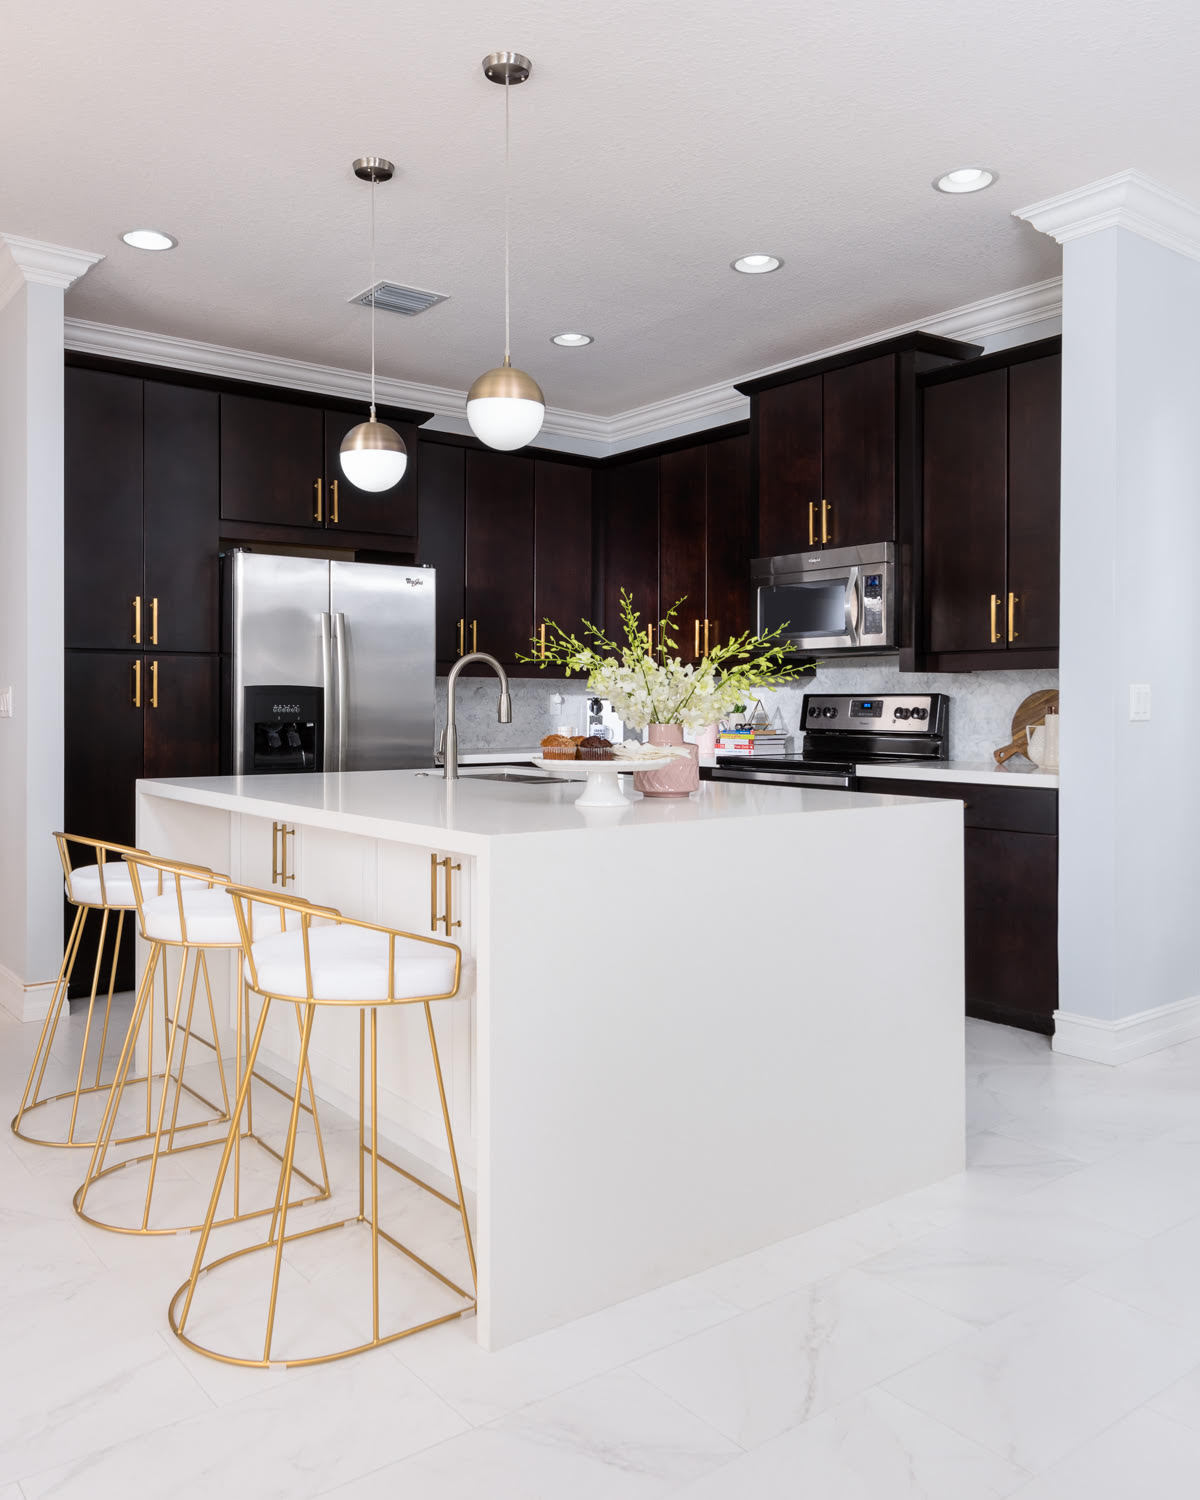 Live Laugh Decorate: How To Create a Stylishly Glam Kitchen - On a ...